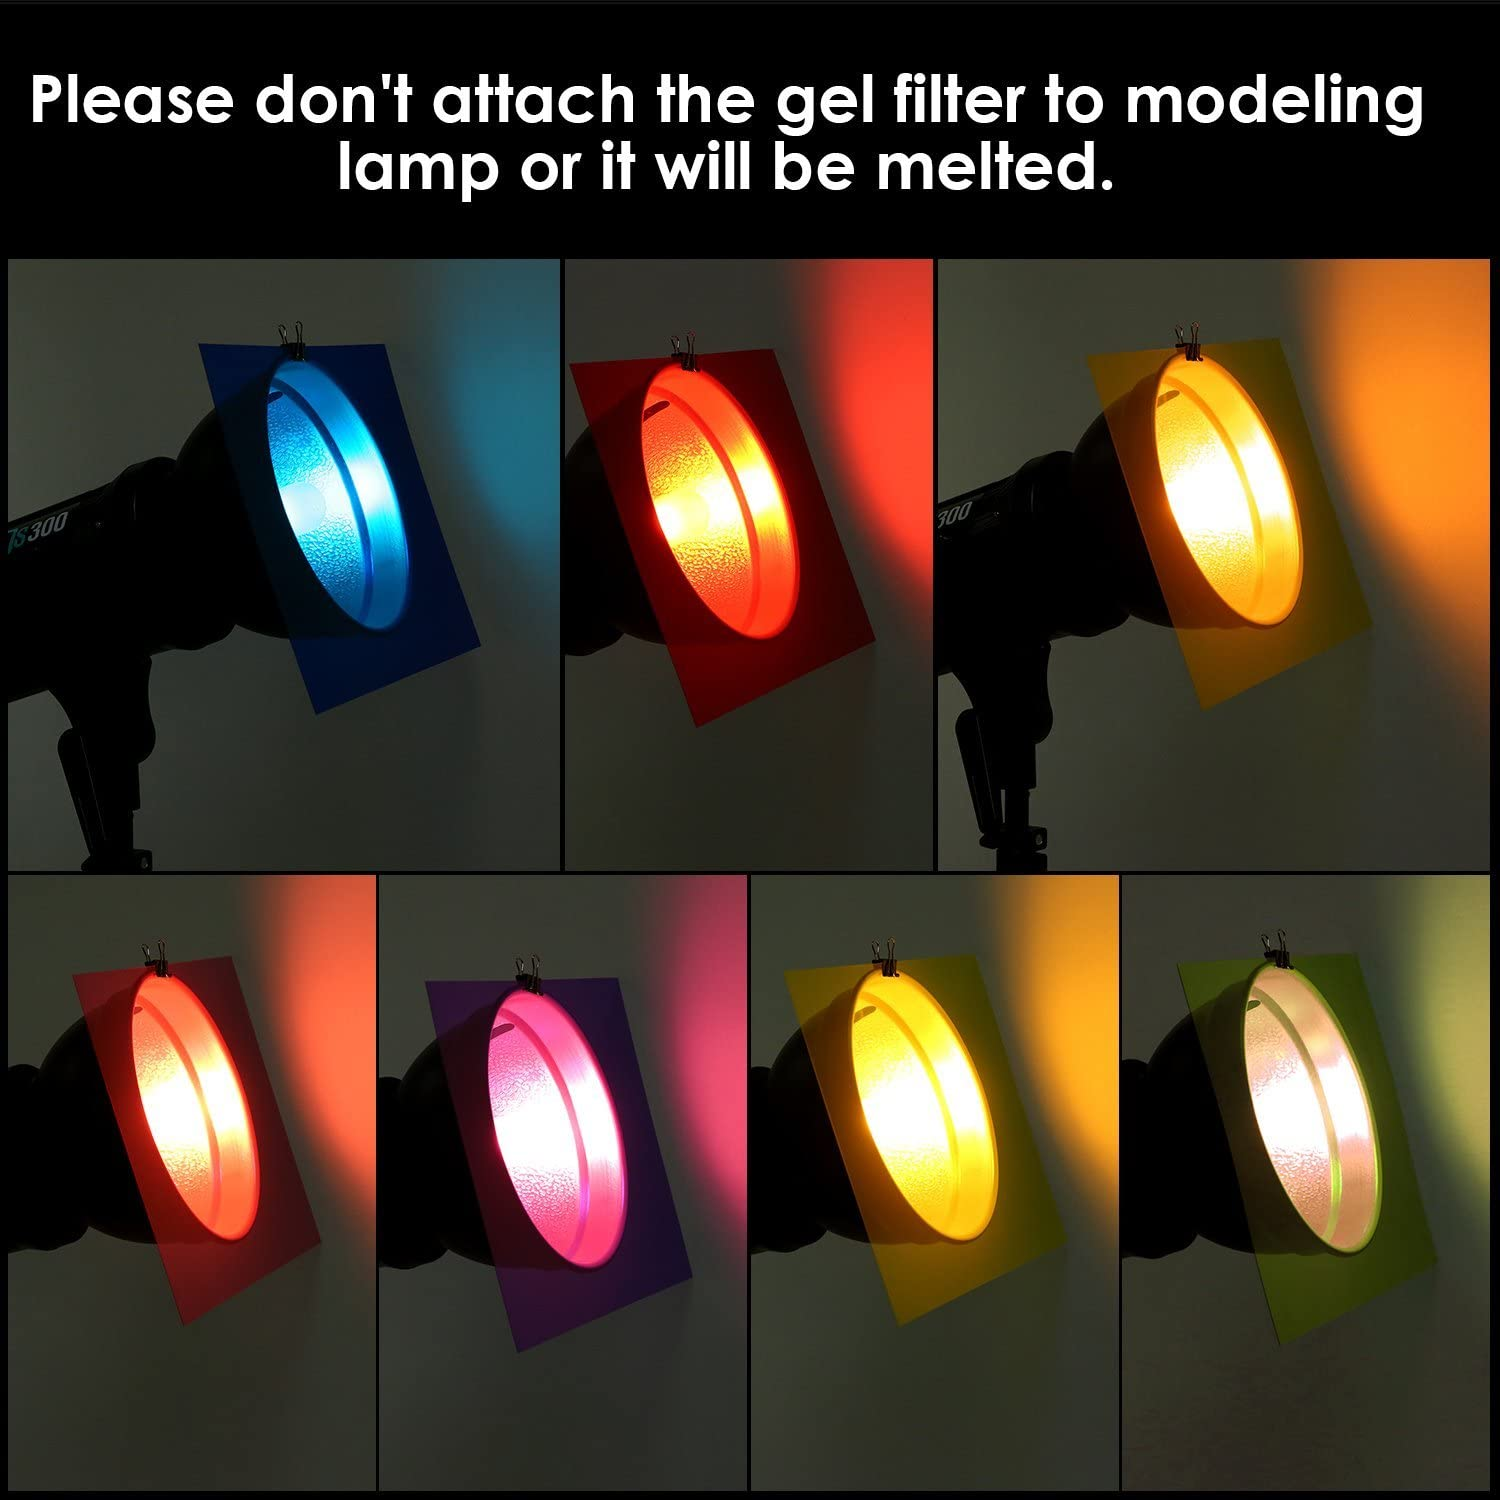 10 Pack Gel Filter Transparency Film Color Plastic Sheets Colored Overlays Correction Gels Light Filter Flash Lighting Holiday Decorations,11.7 by 8.3 Inches Assorted Colors